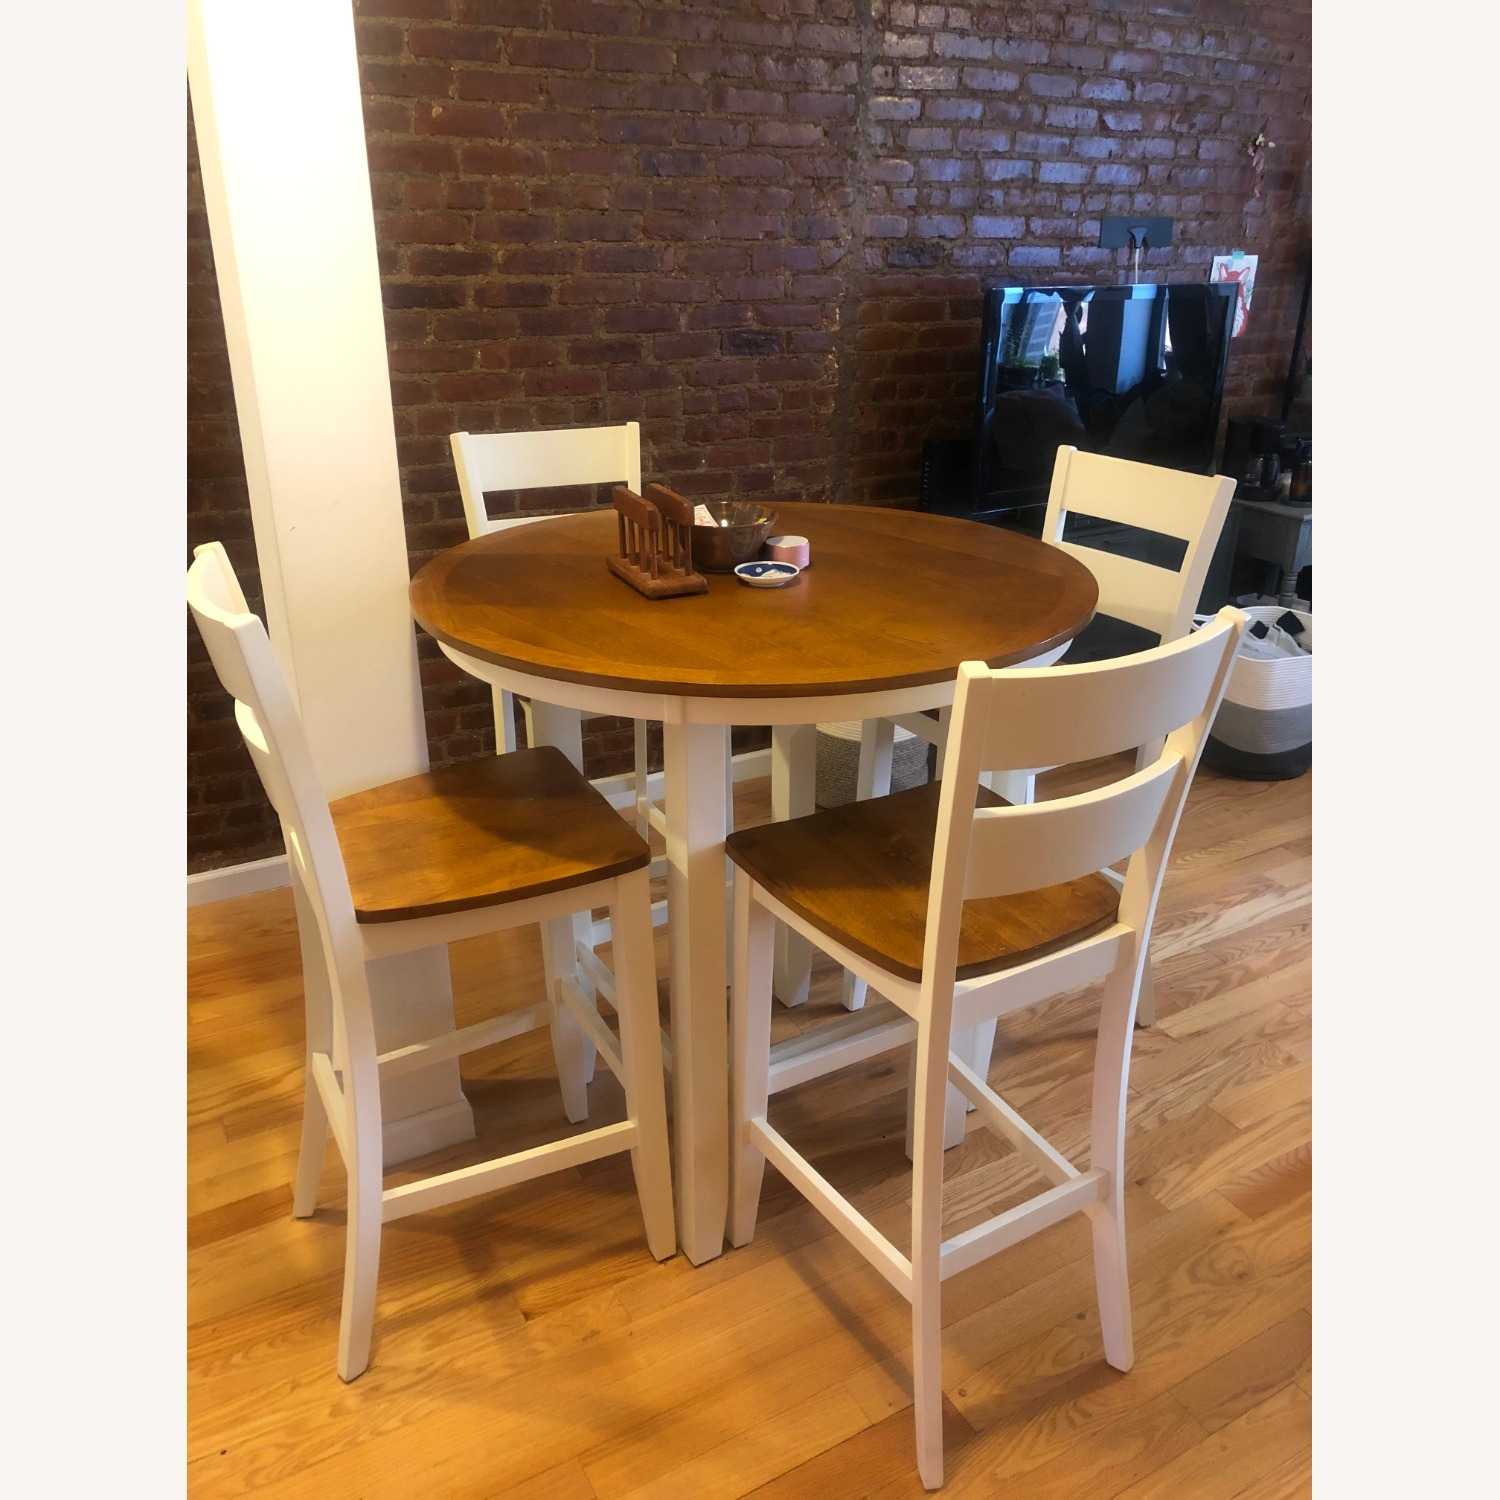 Bar Height Dining Table & Chair Set - image-1